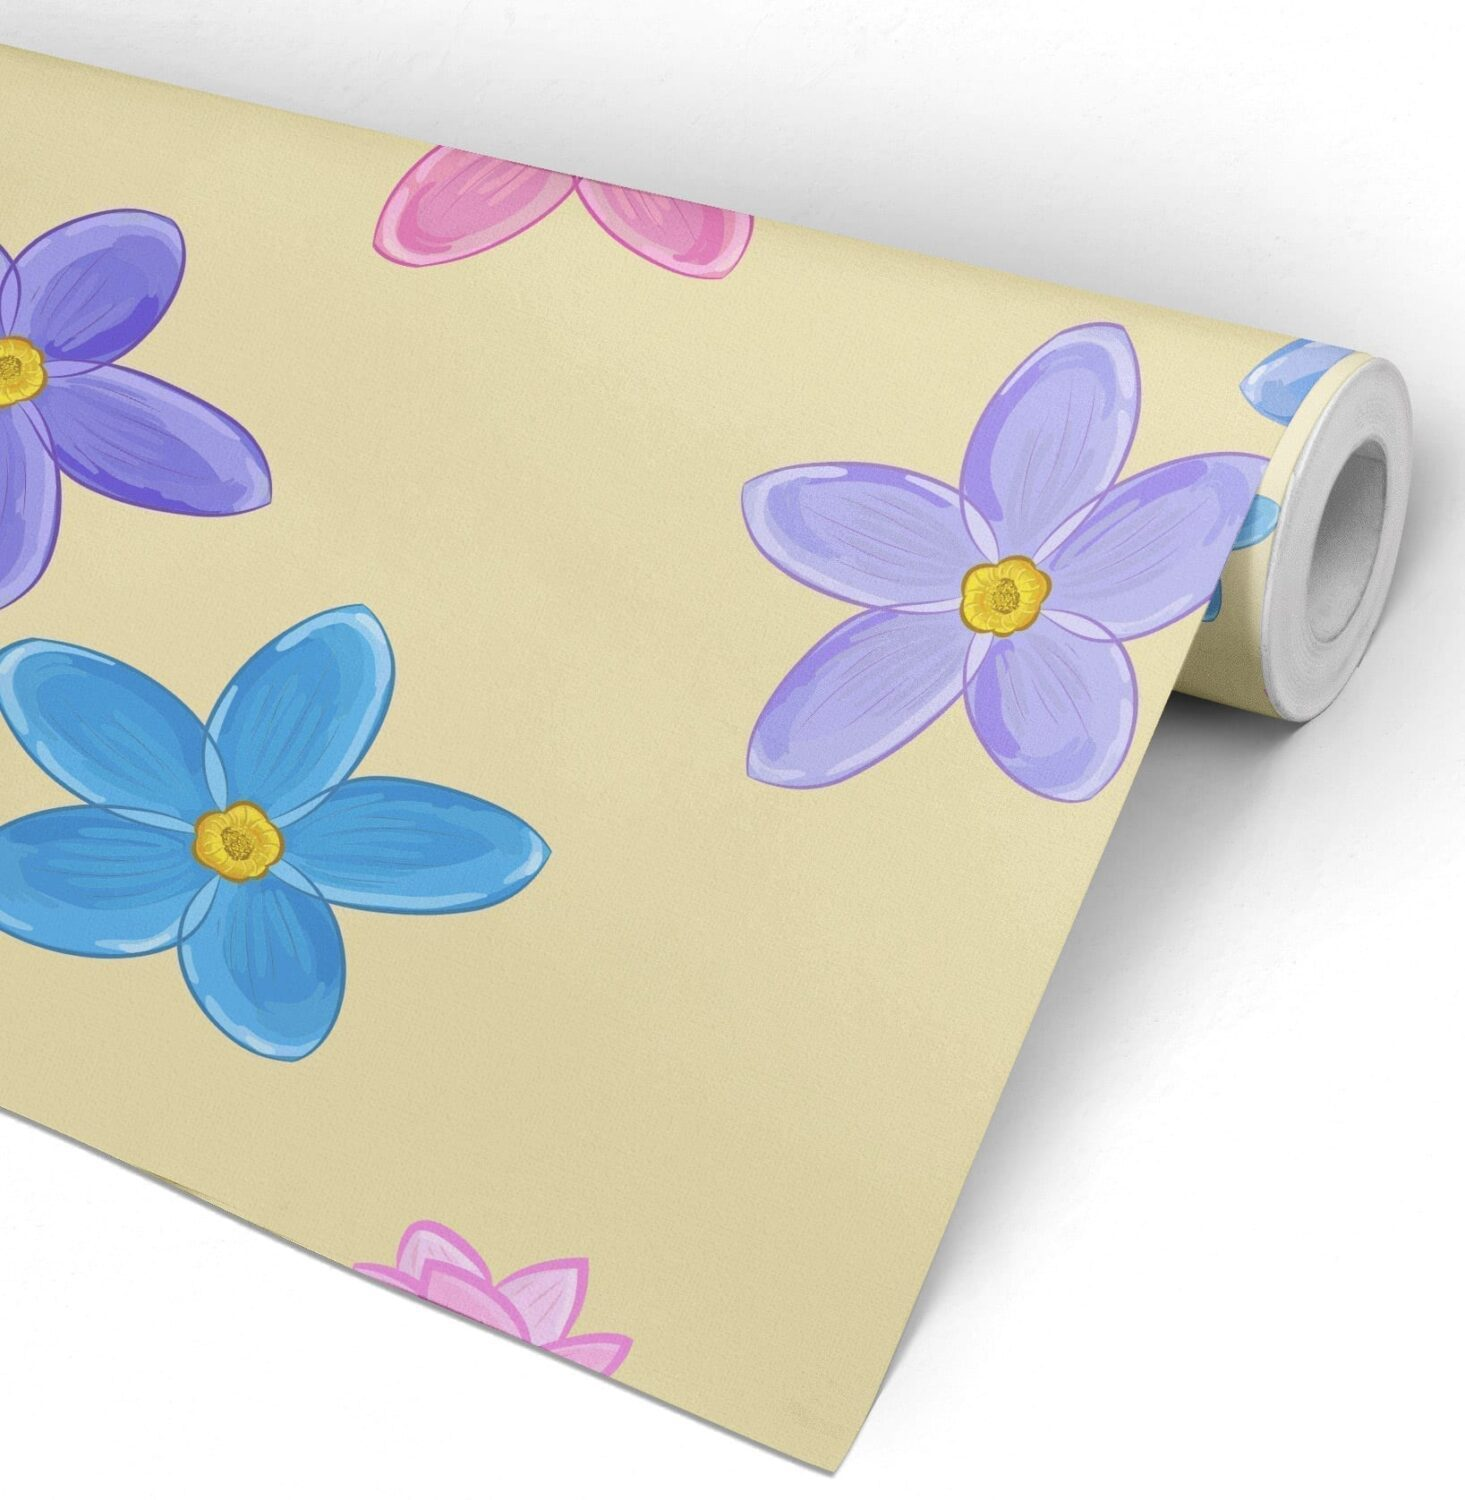 Nursery watercolor flowers peel and stick wallpaper Floral peel and stick wallpaper